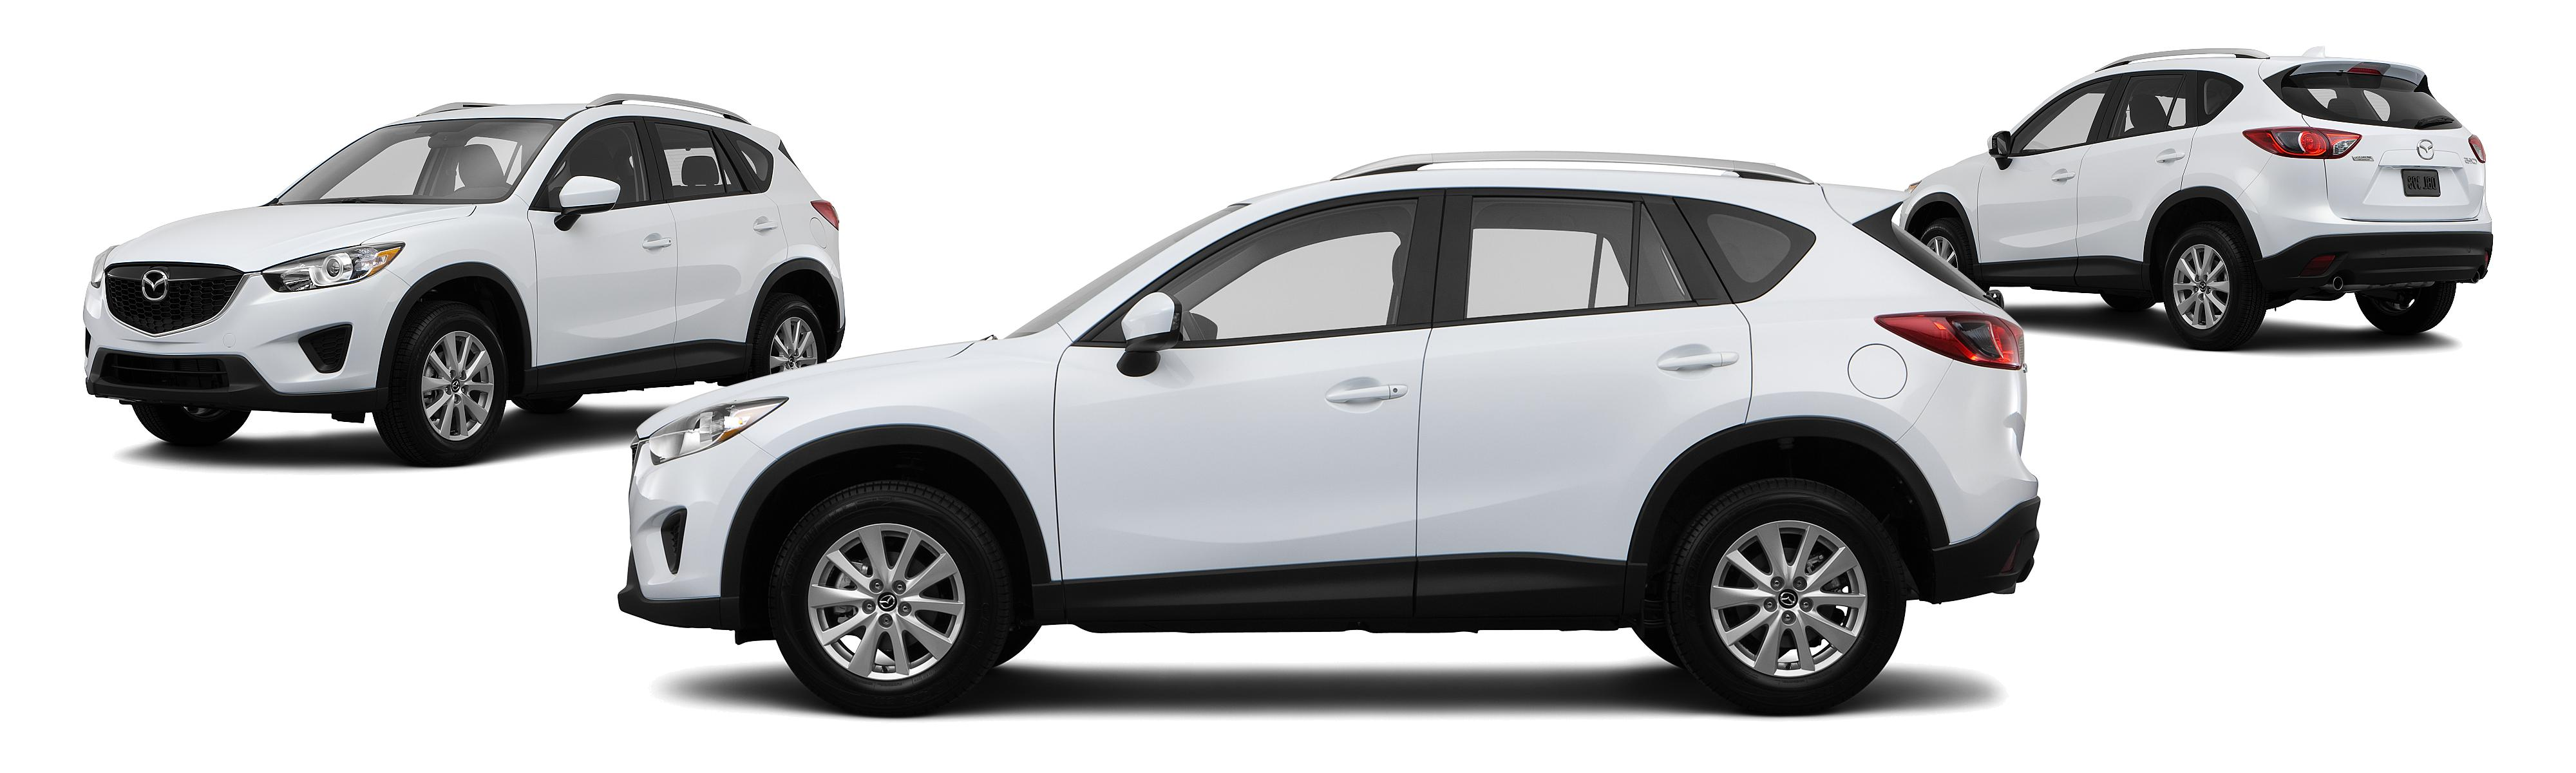 2015 mazda cx 5 awd sport 4dr suv research groovecar